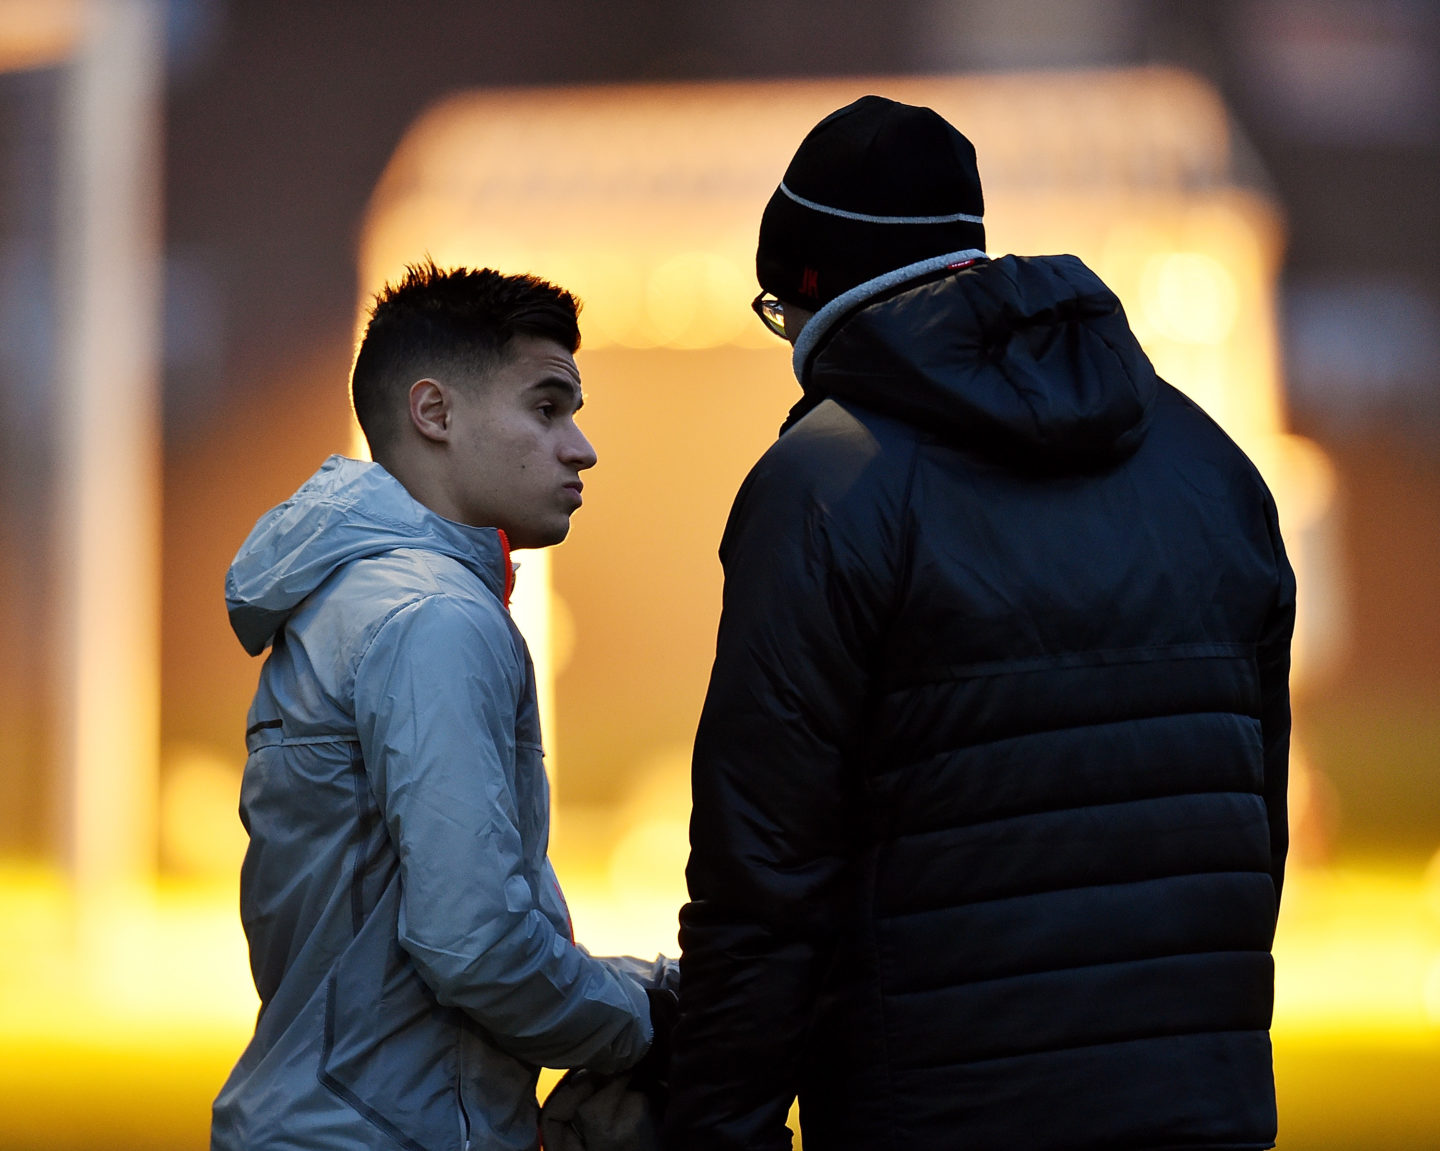 Klopp could give Philippe Coutinho second chance - Rousing